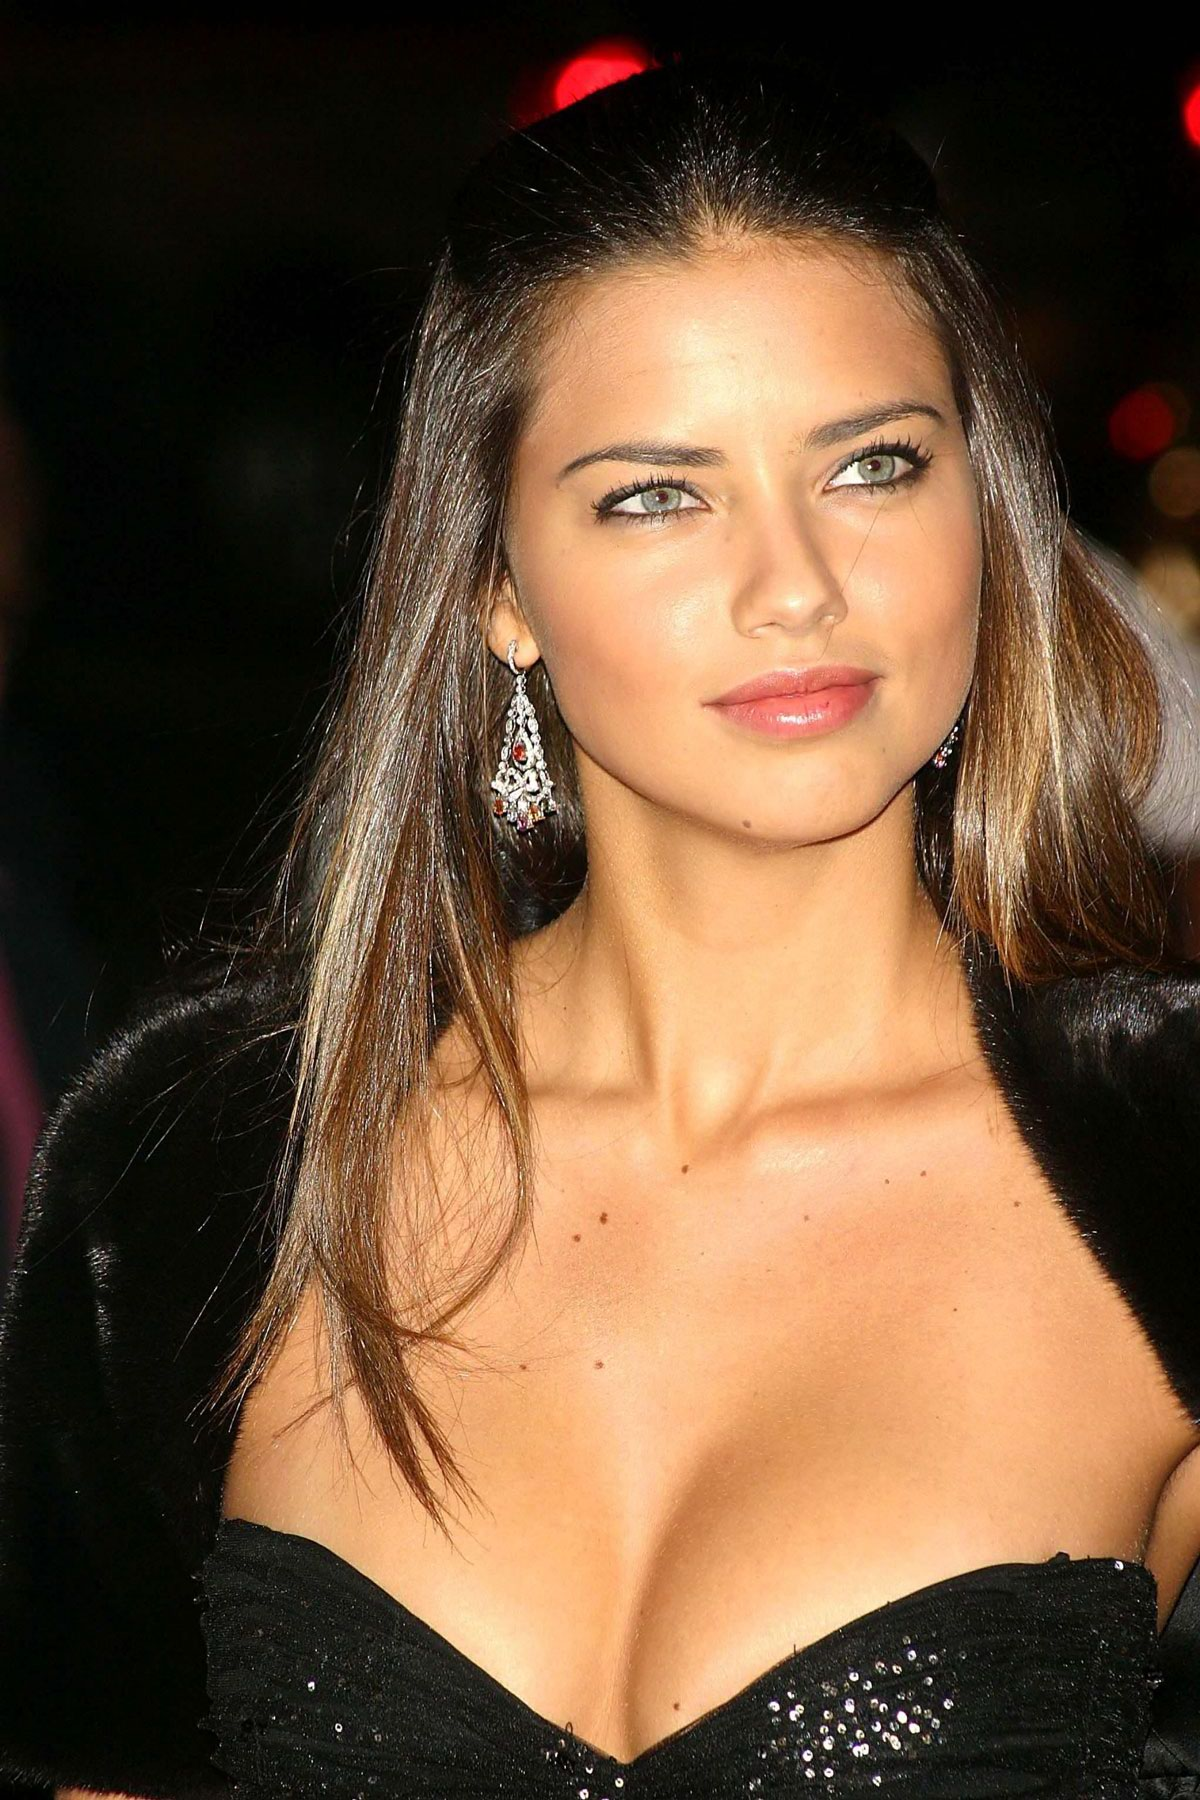 adriana lima photo gallery